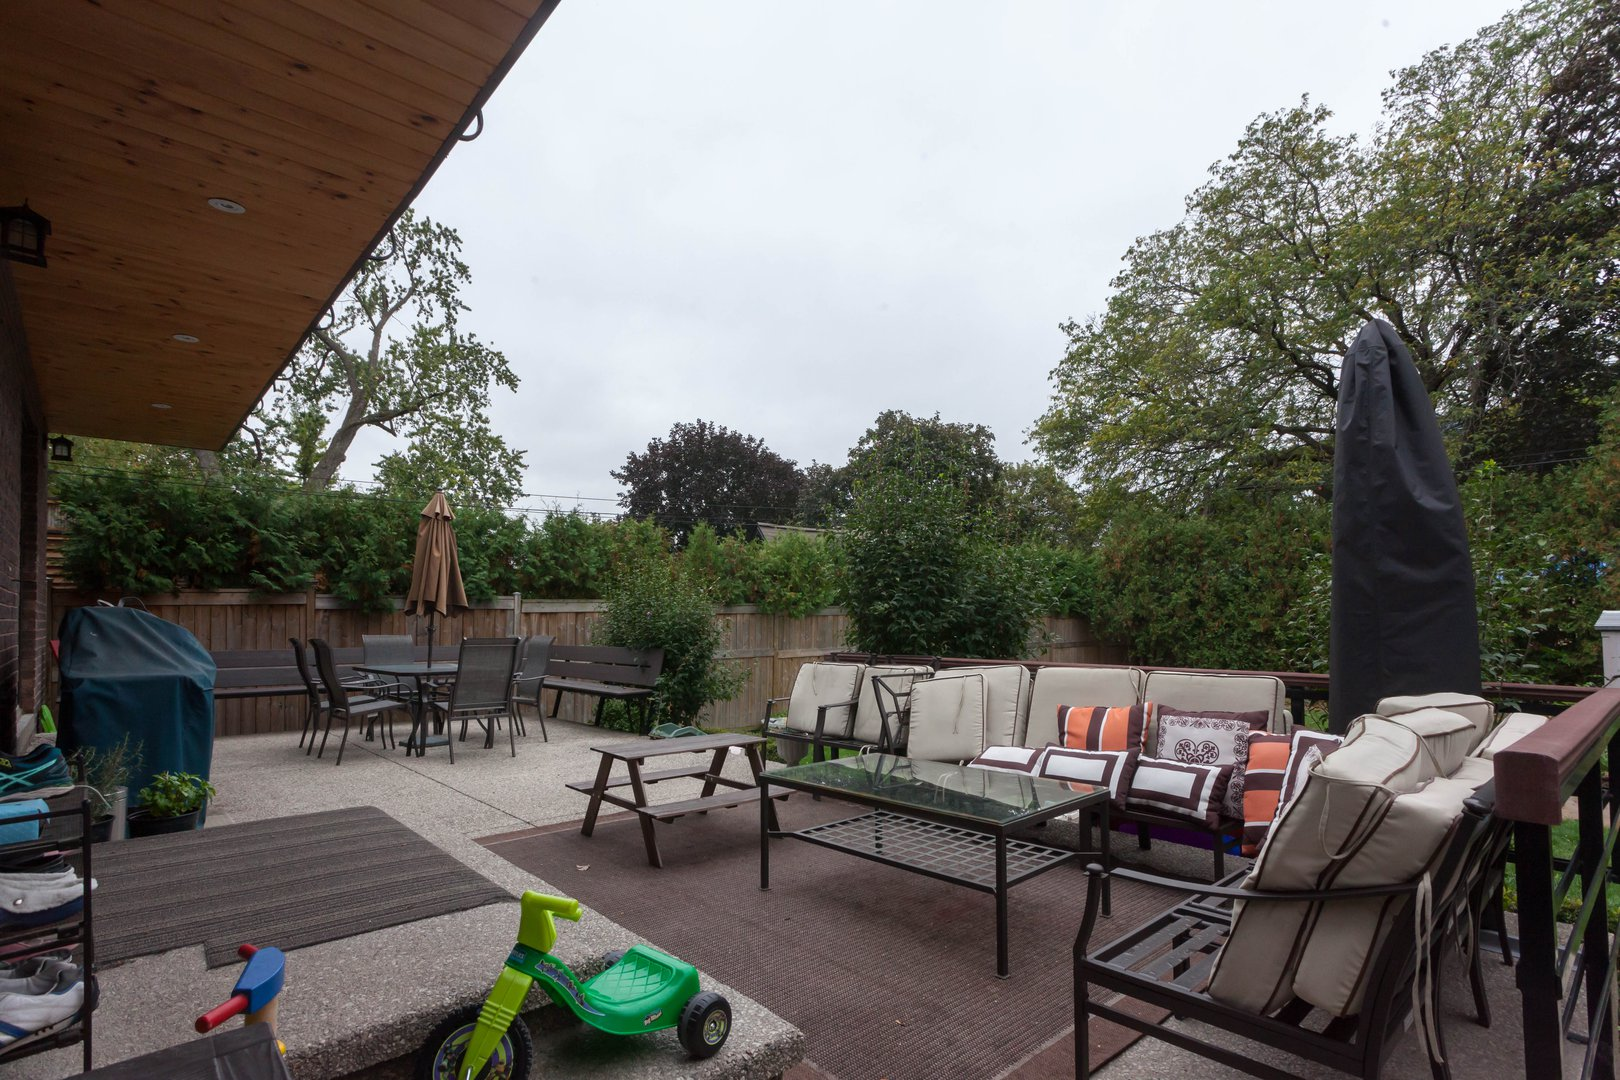 House for rent at 84 Laurel Avenue, Etobicoke, ON. This is the patio terrace with outdoor living space.